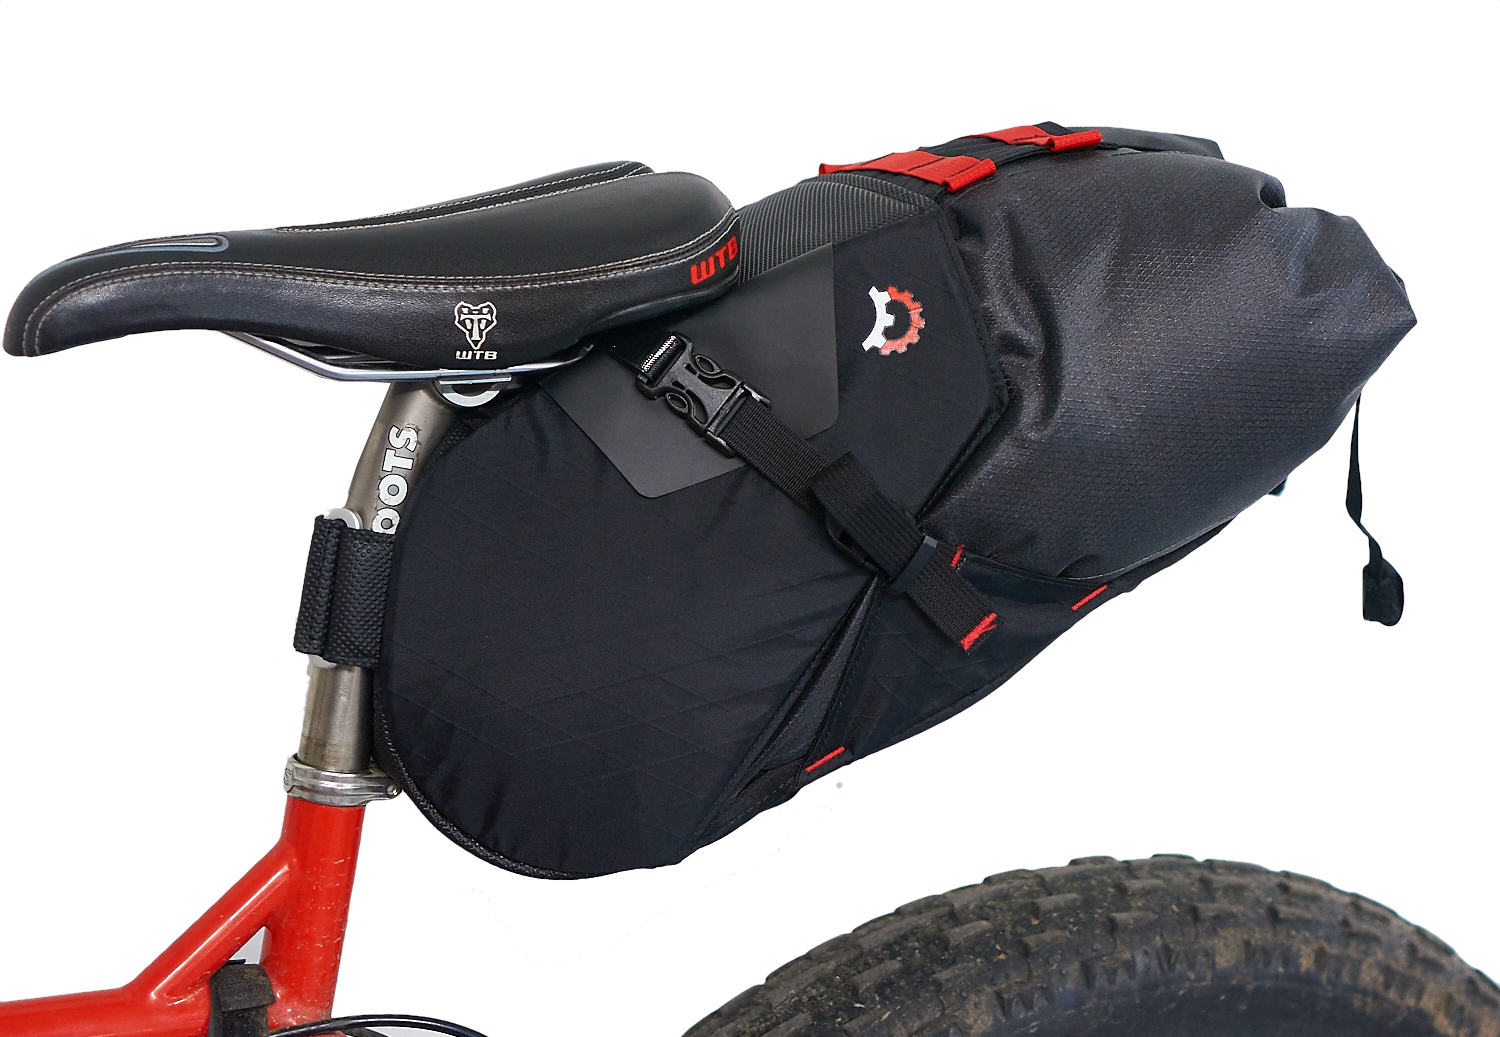 mounted side with drybag